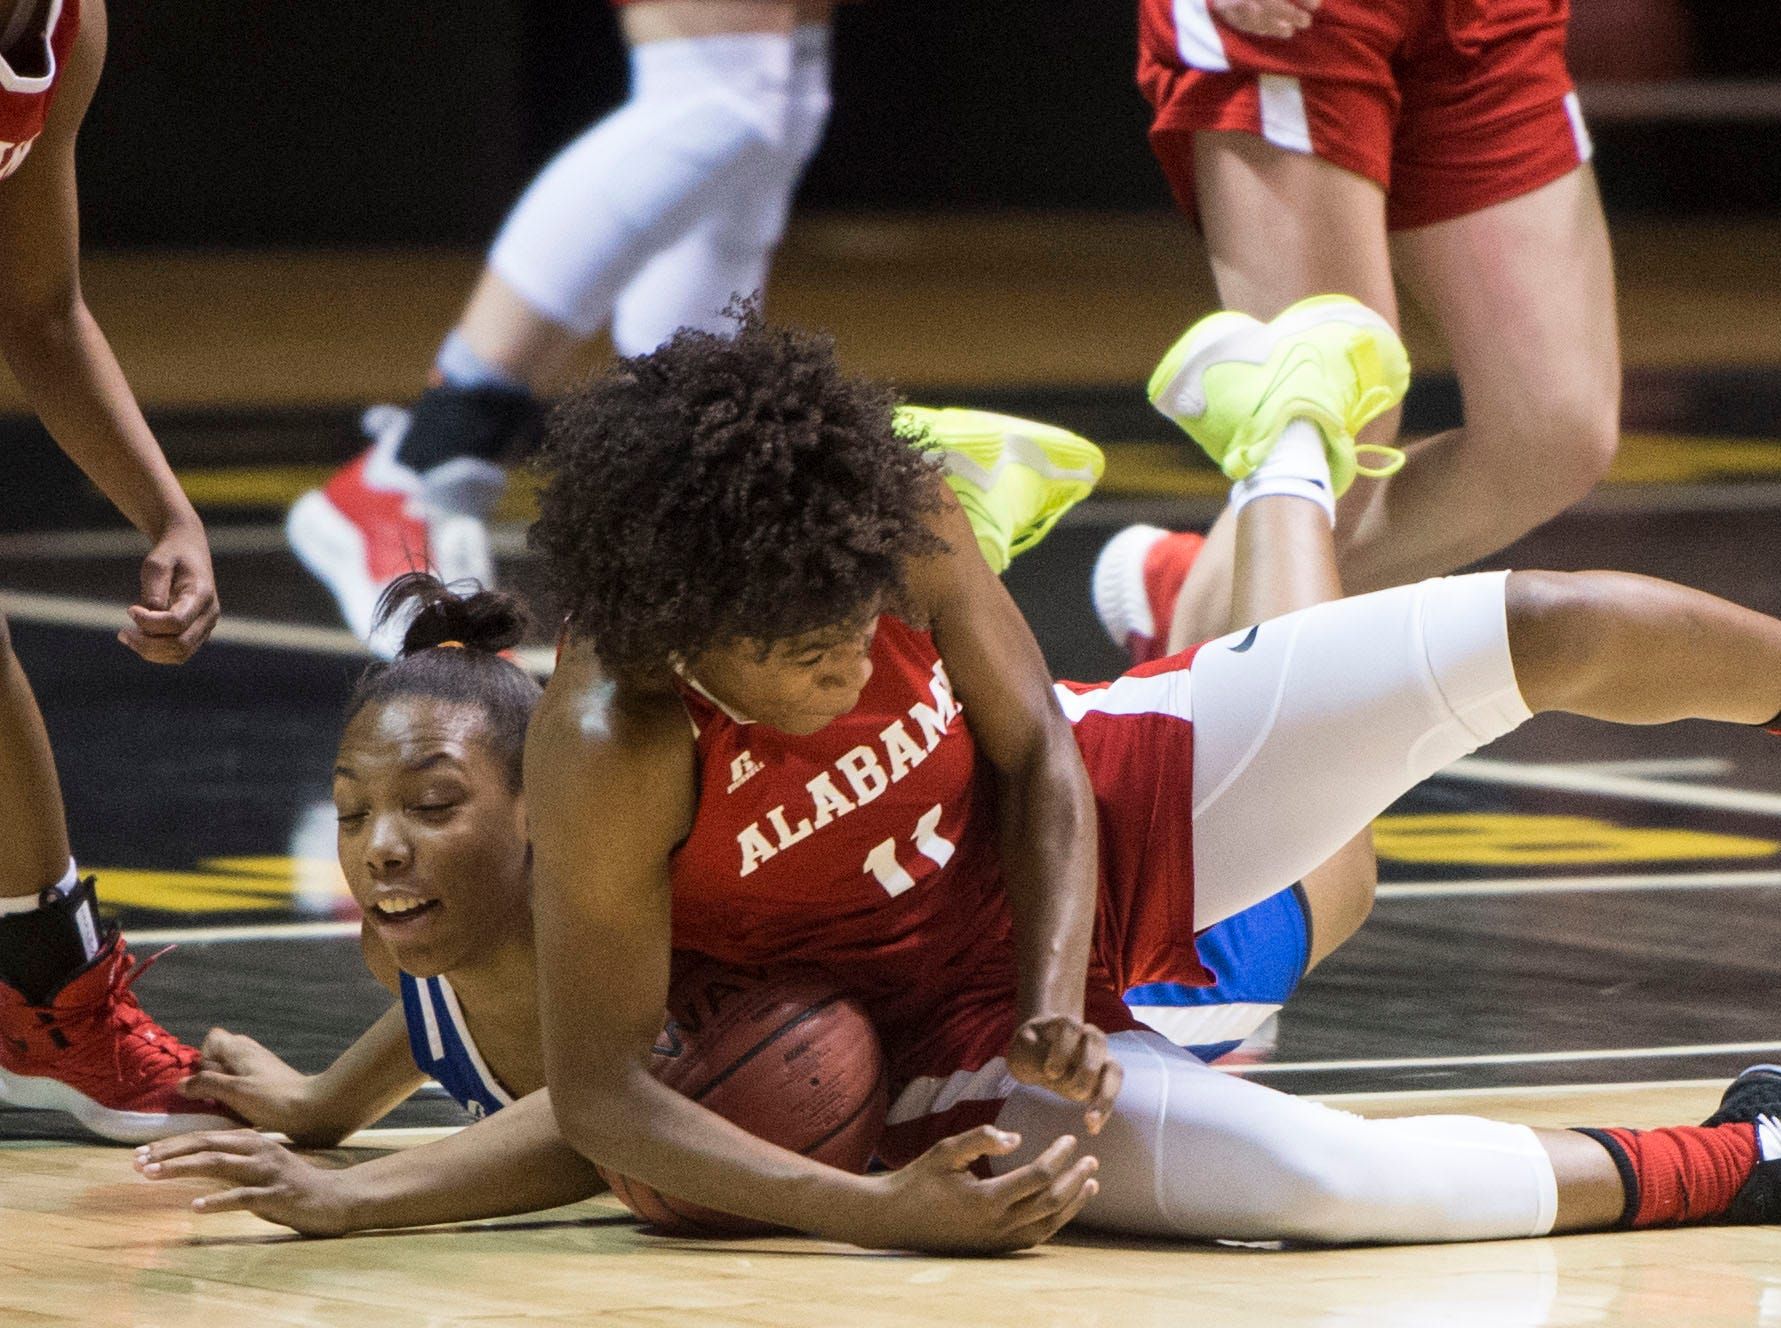 Mississippi's Keshuna Luckett (15) and Alabama's Jaylyn Sherrod (11) dive for a loose ball during the Alabama-Mississippi All-Star game at the Dunn-Oliver Acadome in Montgomery, Ala., on Friday, March 15, 2019. Alabama All-stars lead the Mississippi All-stars 48-34 at halftime.